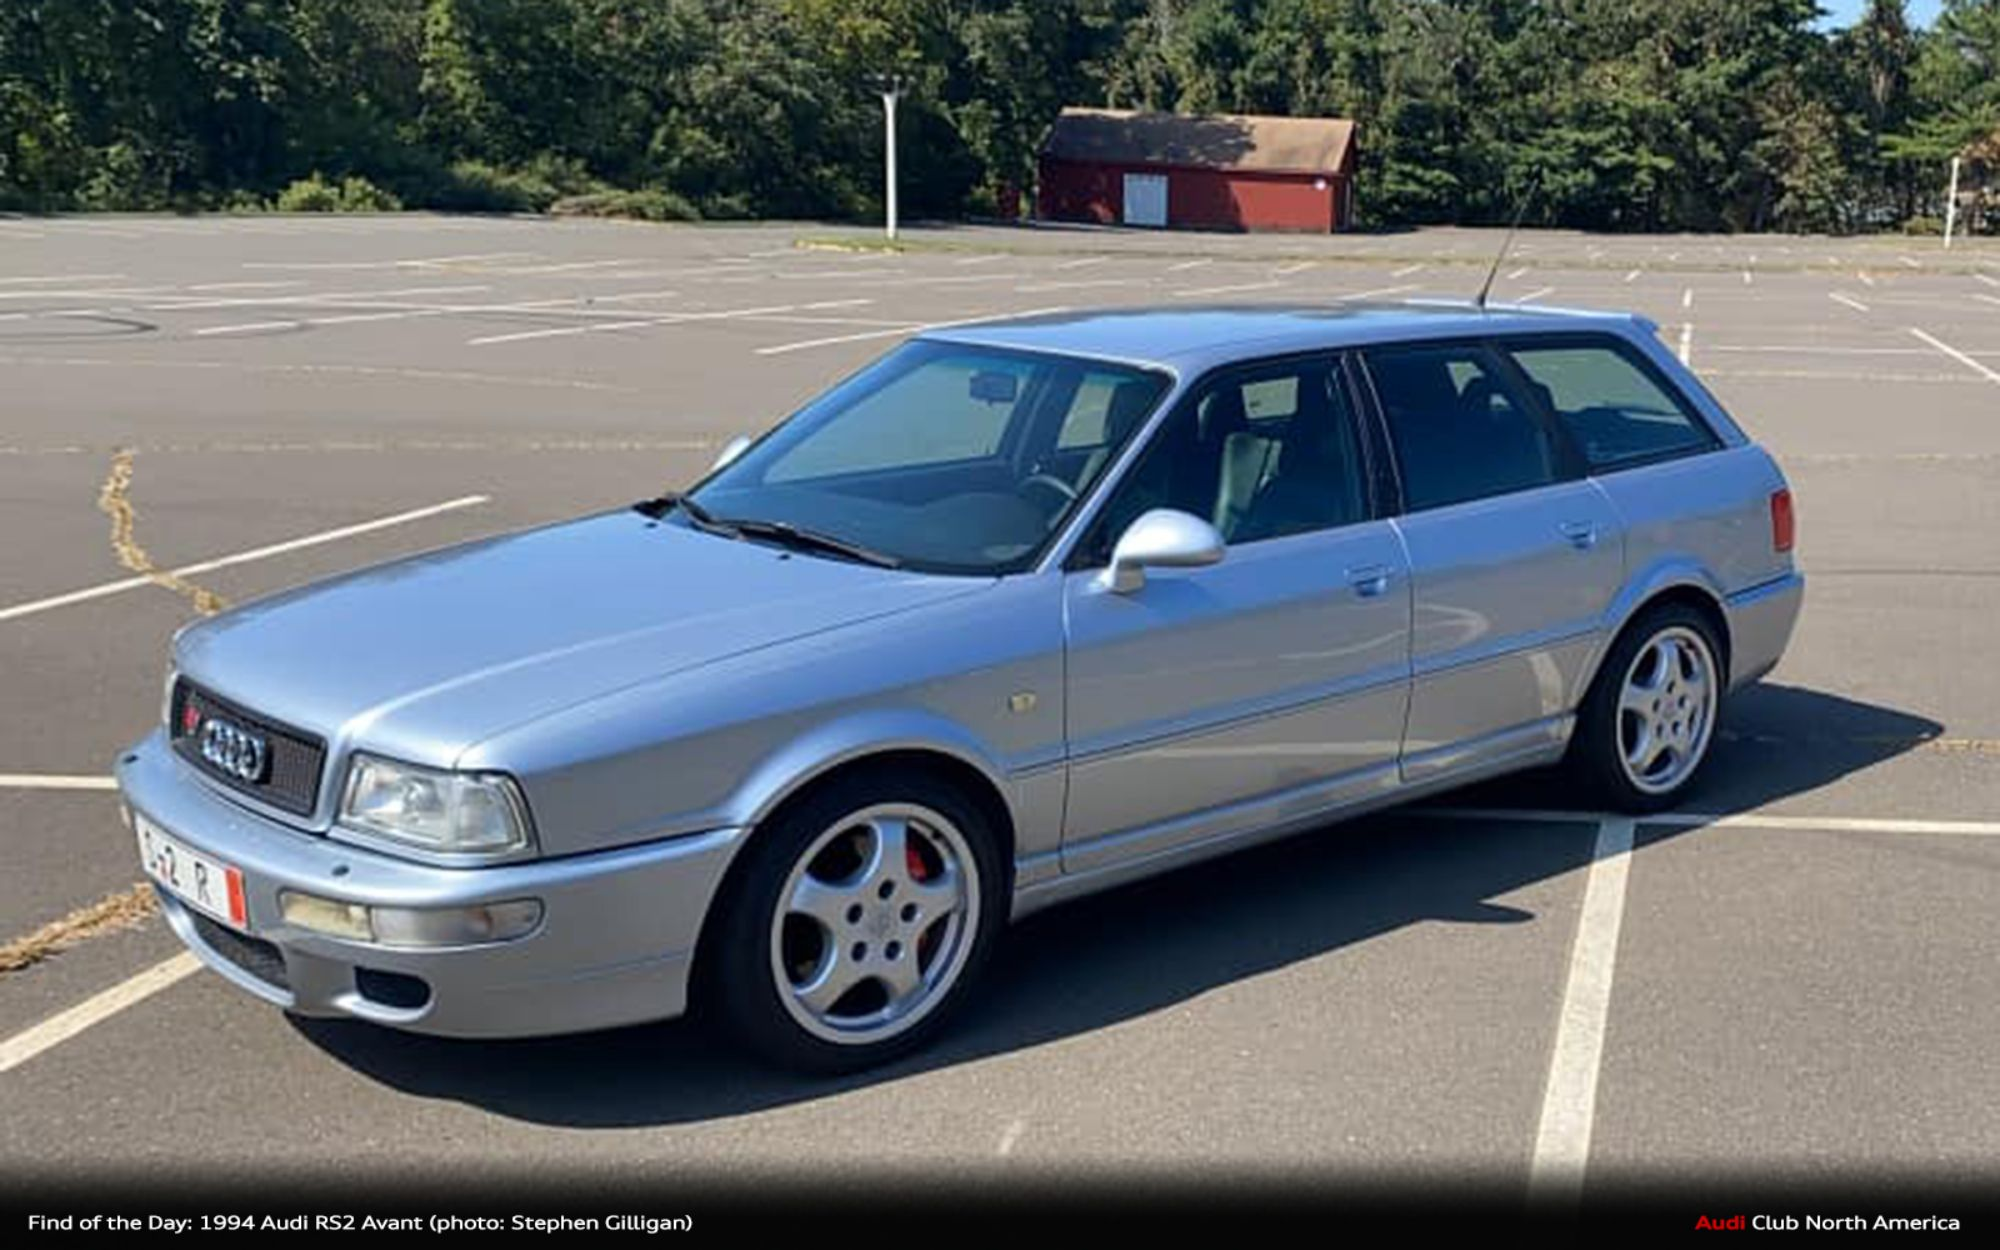 Find of the Day: 1994 Audi RS2 Avant